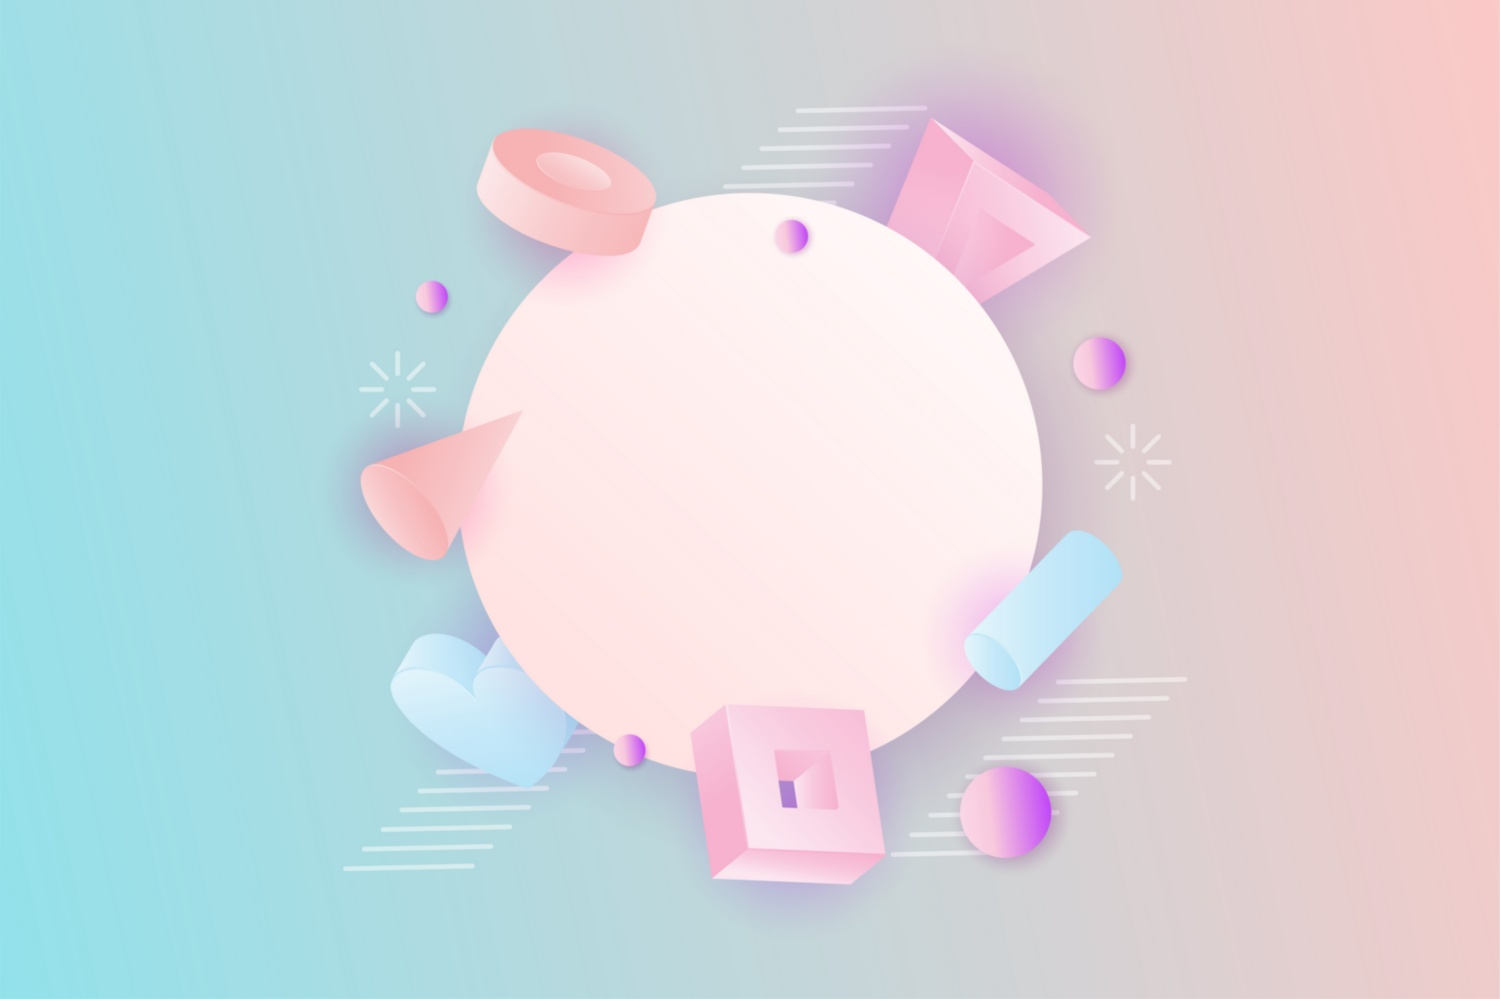 Download Free 3d Vector Realistic Primitives Figure Graphic By Kapitosh for Cricut Explore, Silhouette and other cutting machines.